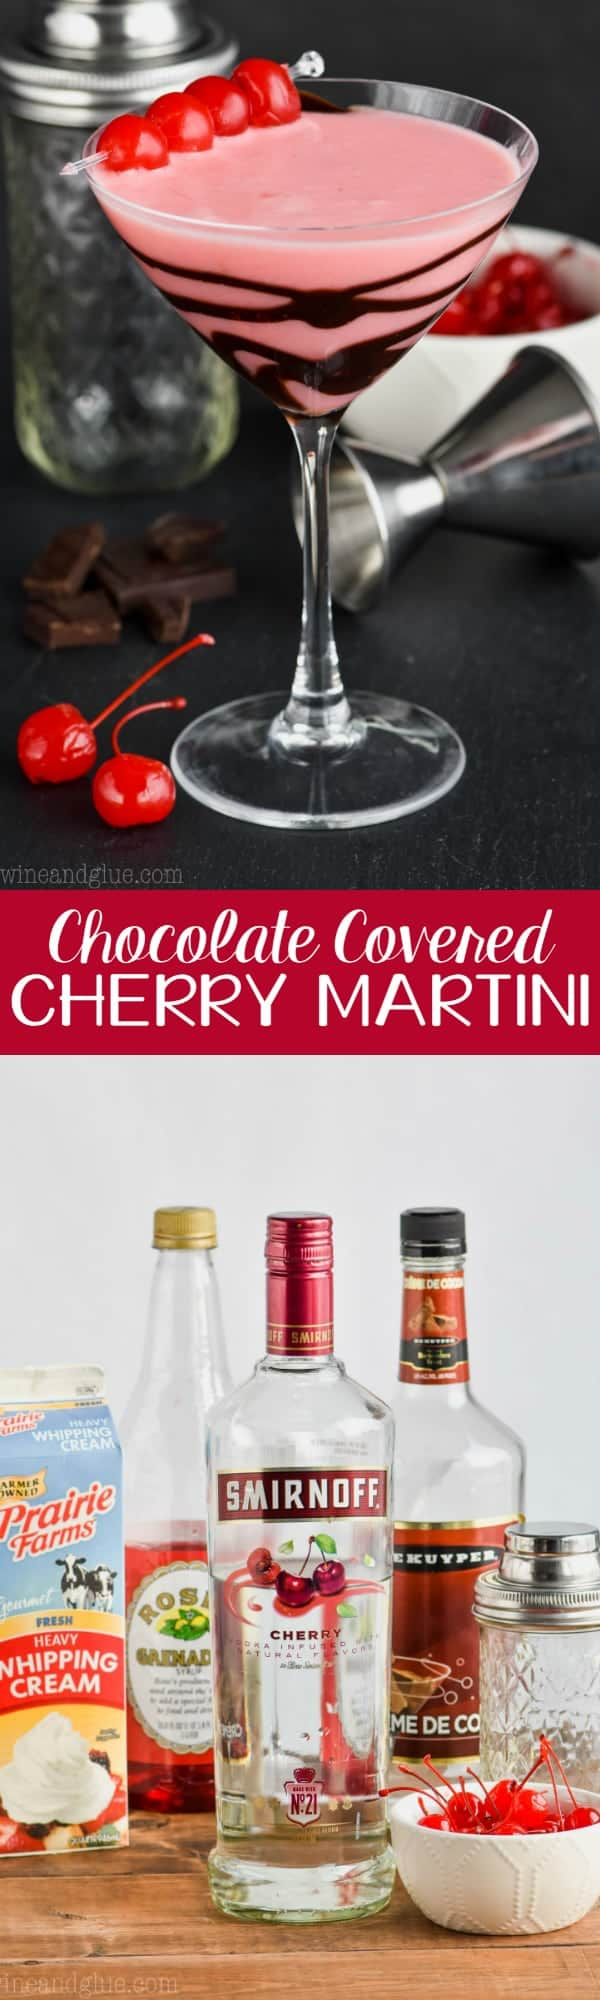 martini glass drizzled with chocolate and full of chocolate covered cherry martini